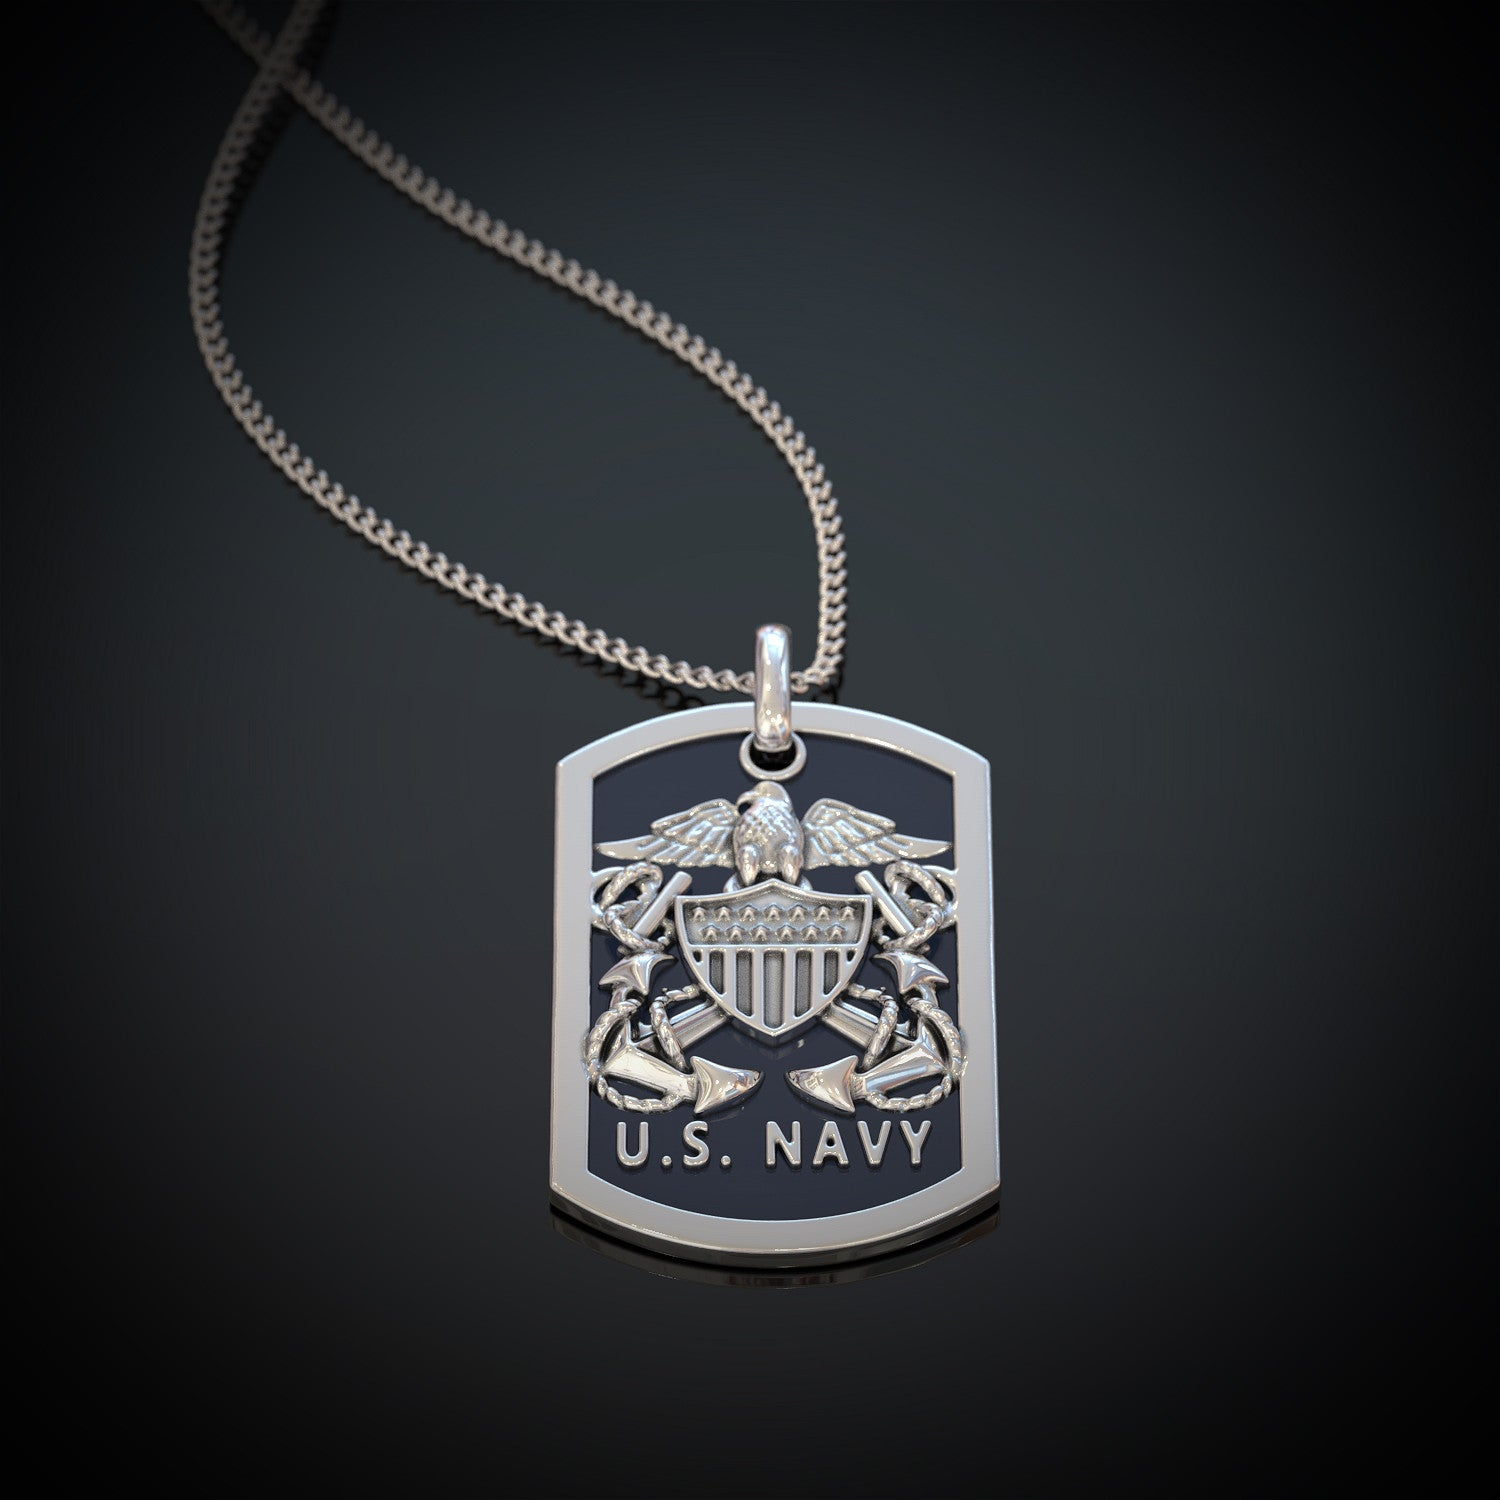 Us navy pendant shineon us navy pendant aloadofball Choice Image